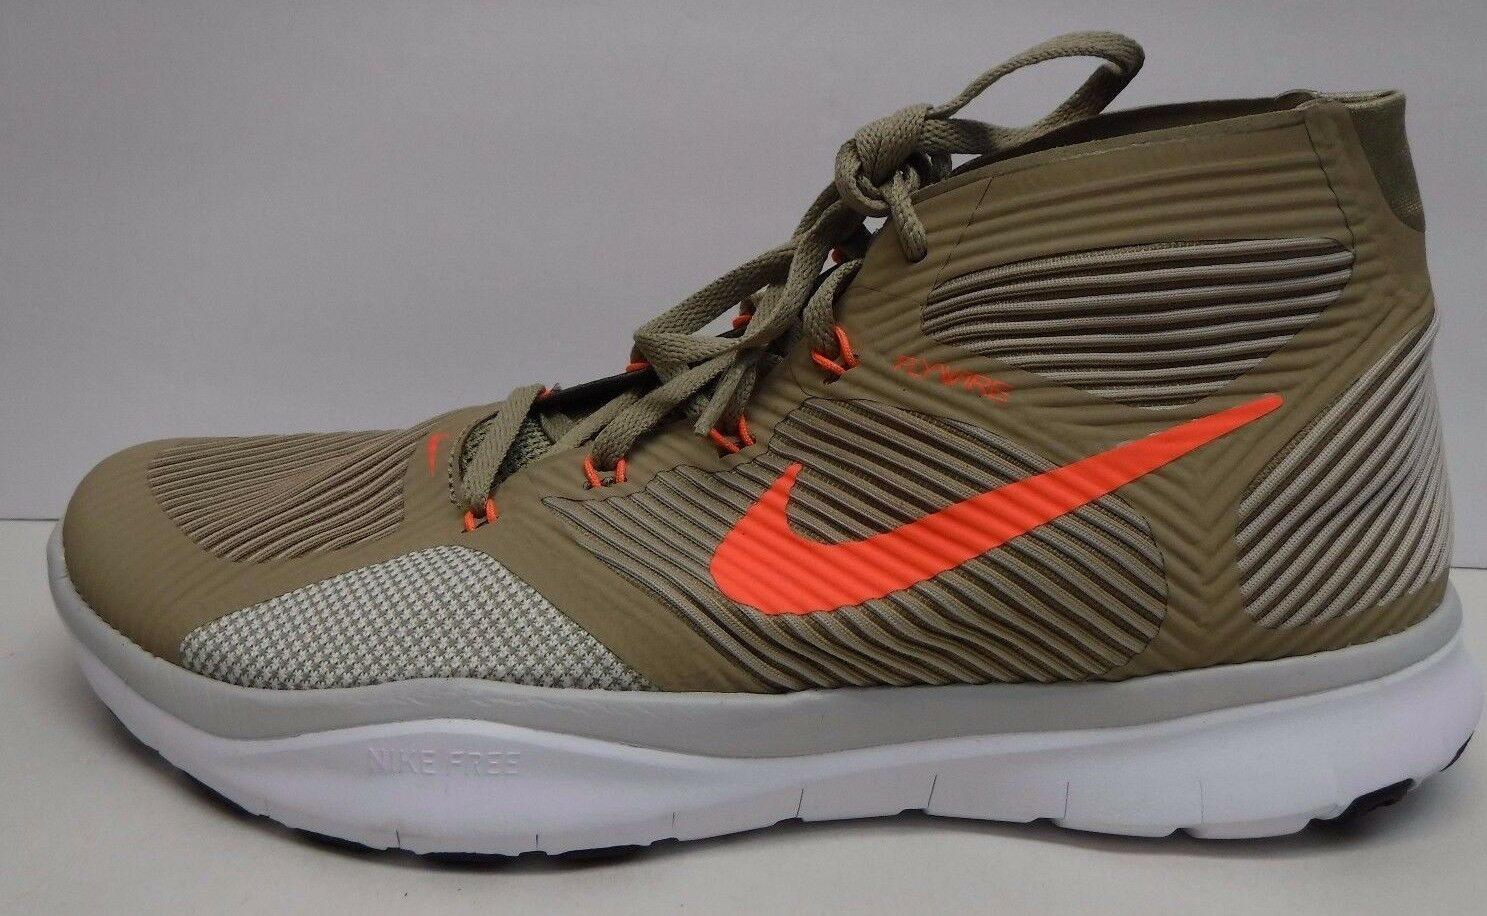 Nike Sneakers Size 9 Beige Training Sneakers Nike New Mens Shoes 613ed3